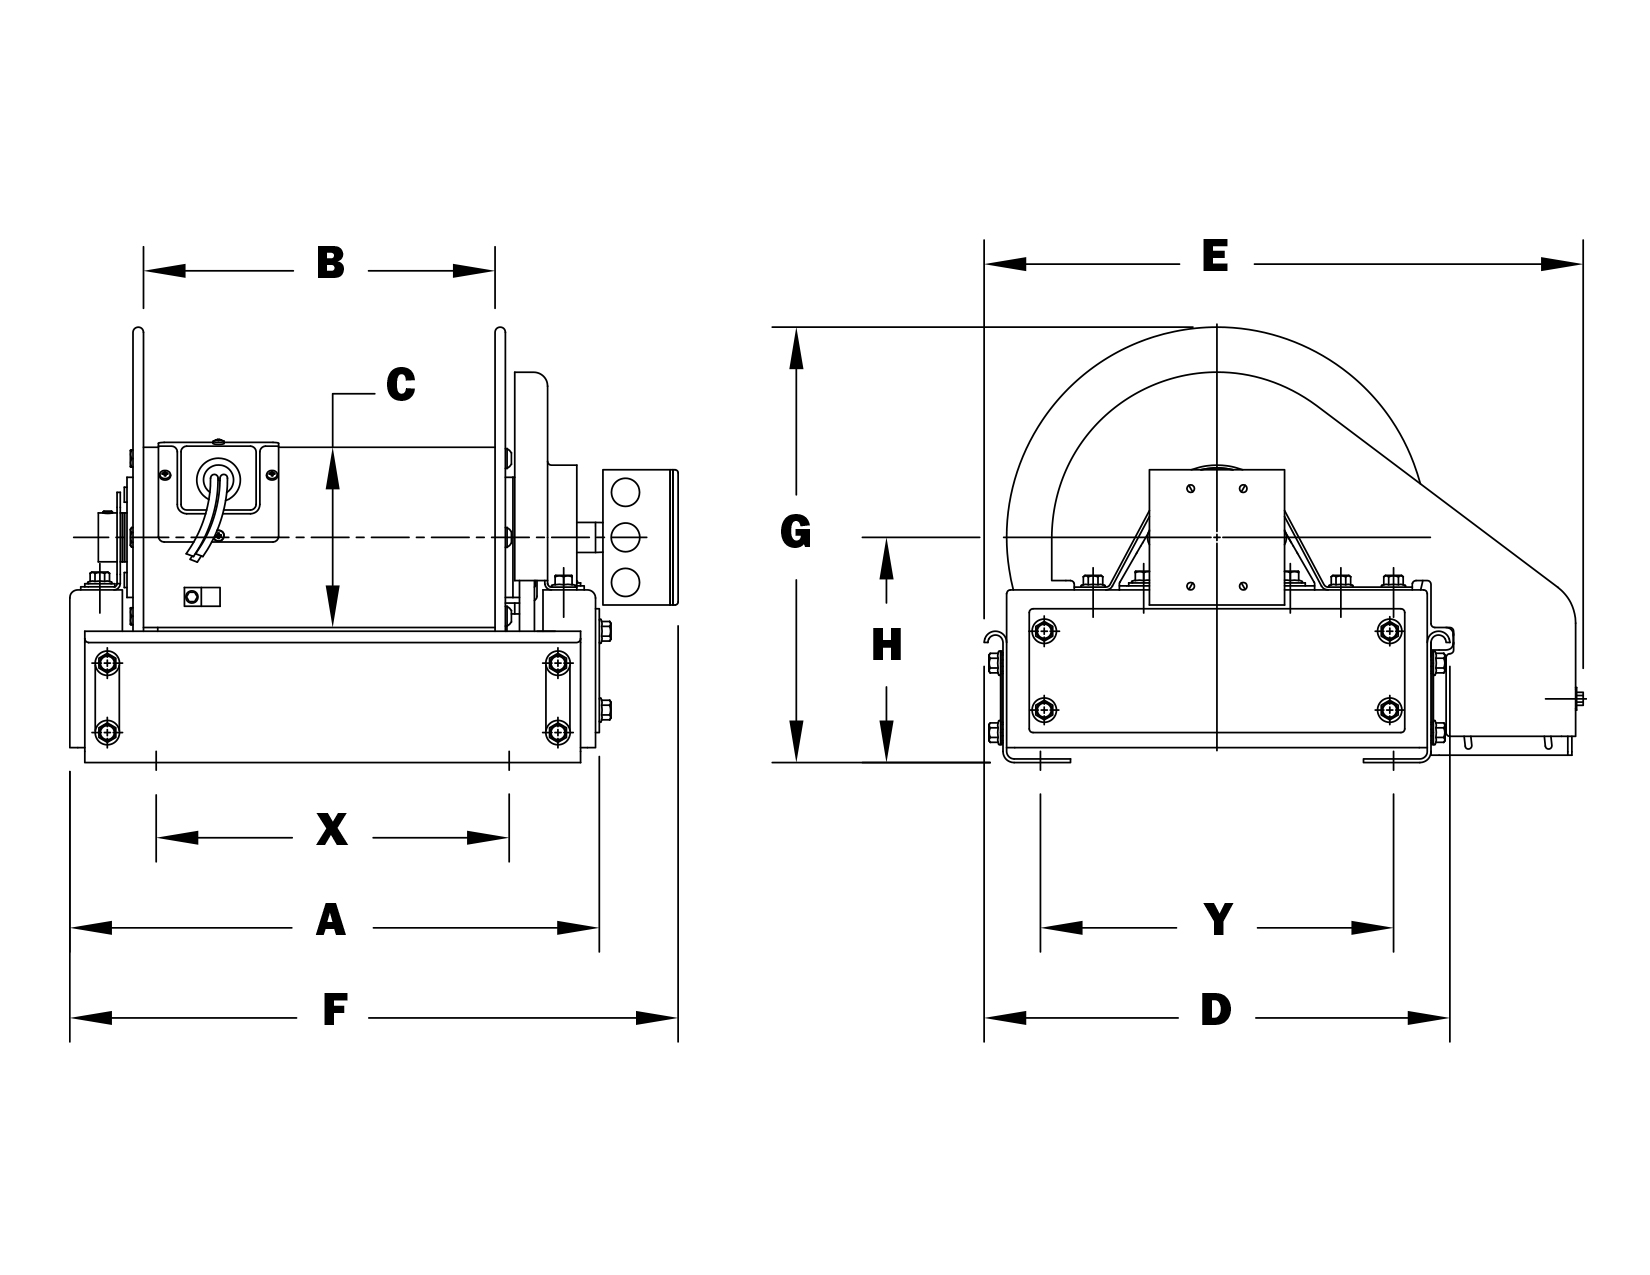 ELFCR1600 Schematic_1492438268 elfcr1600 series hannay reels official site hannay reel wiring diagram at panicattacktreatment.co